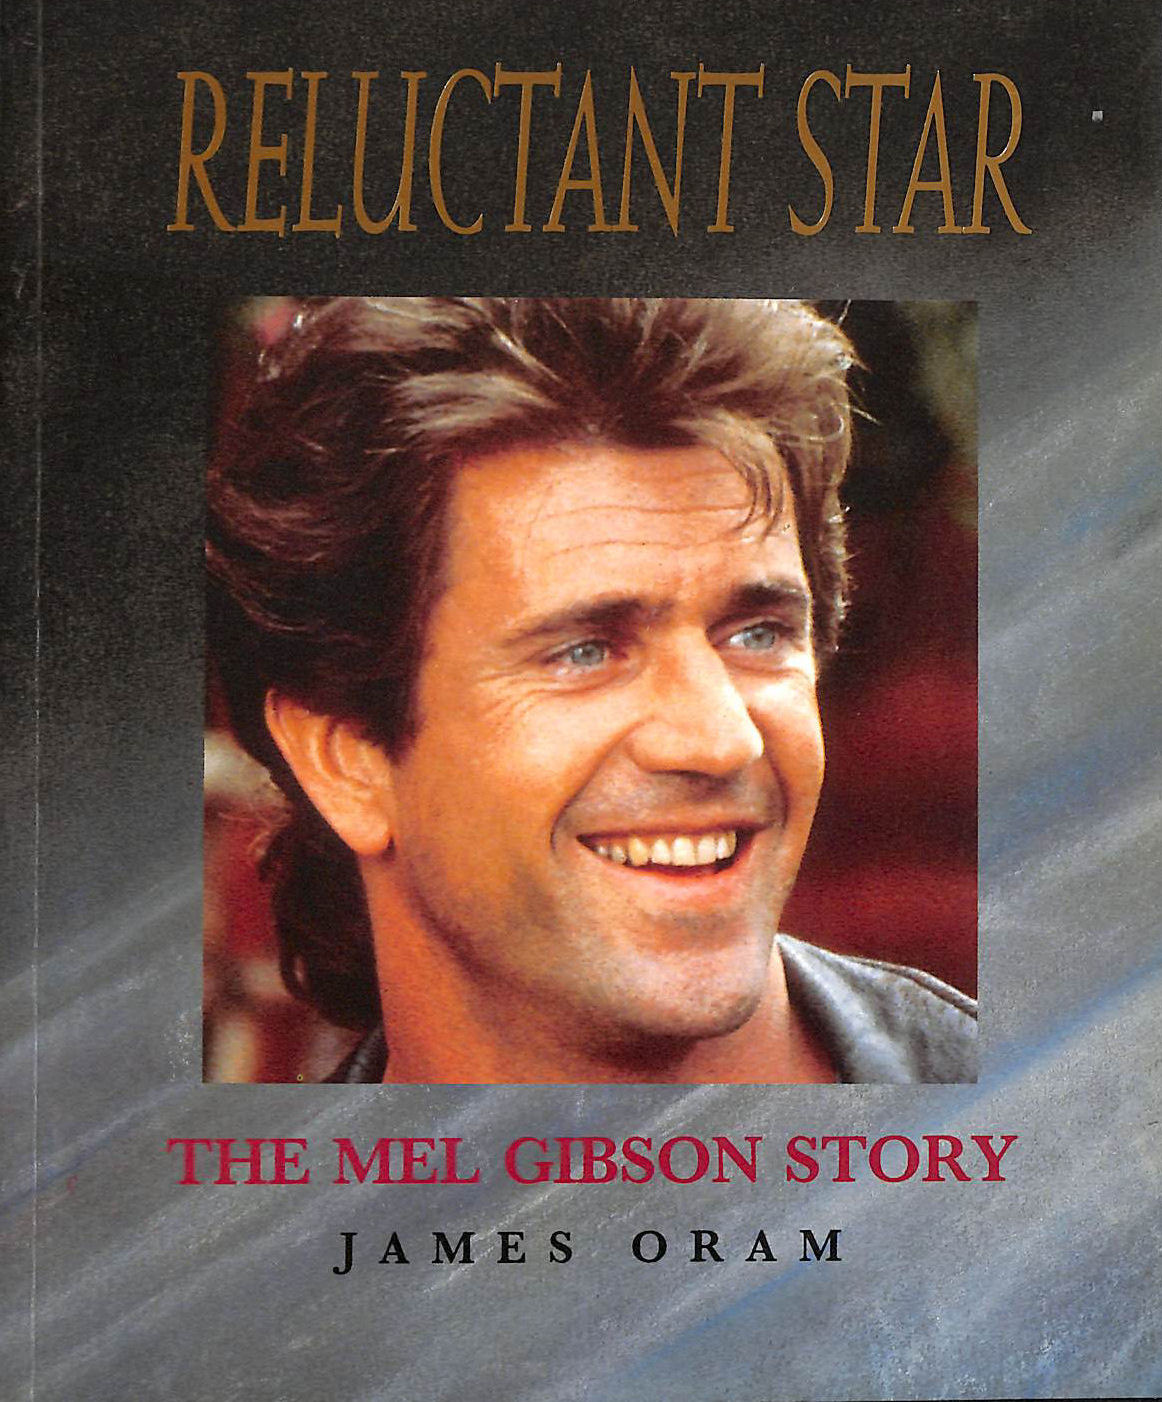 Image for Reluctant Star: Mel Gibson Story